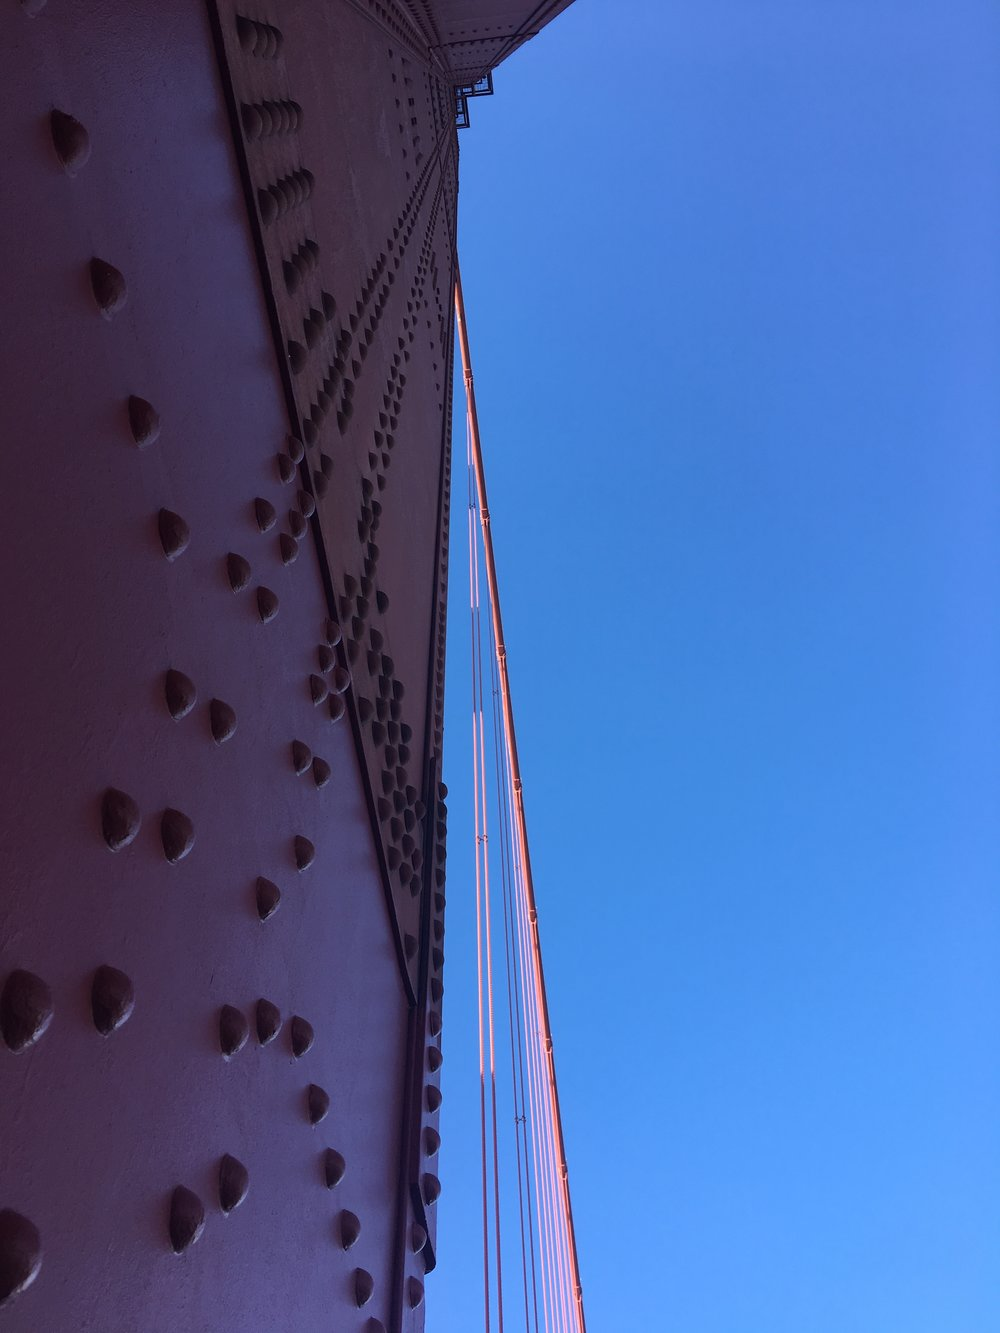 Here's a weird picture I took of the Golden Gate Bridge last January.